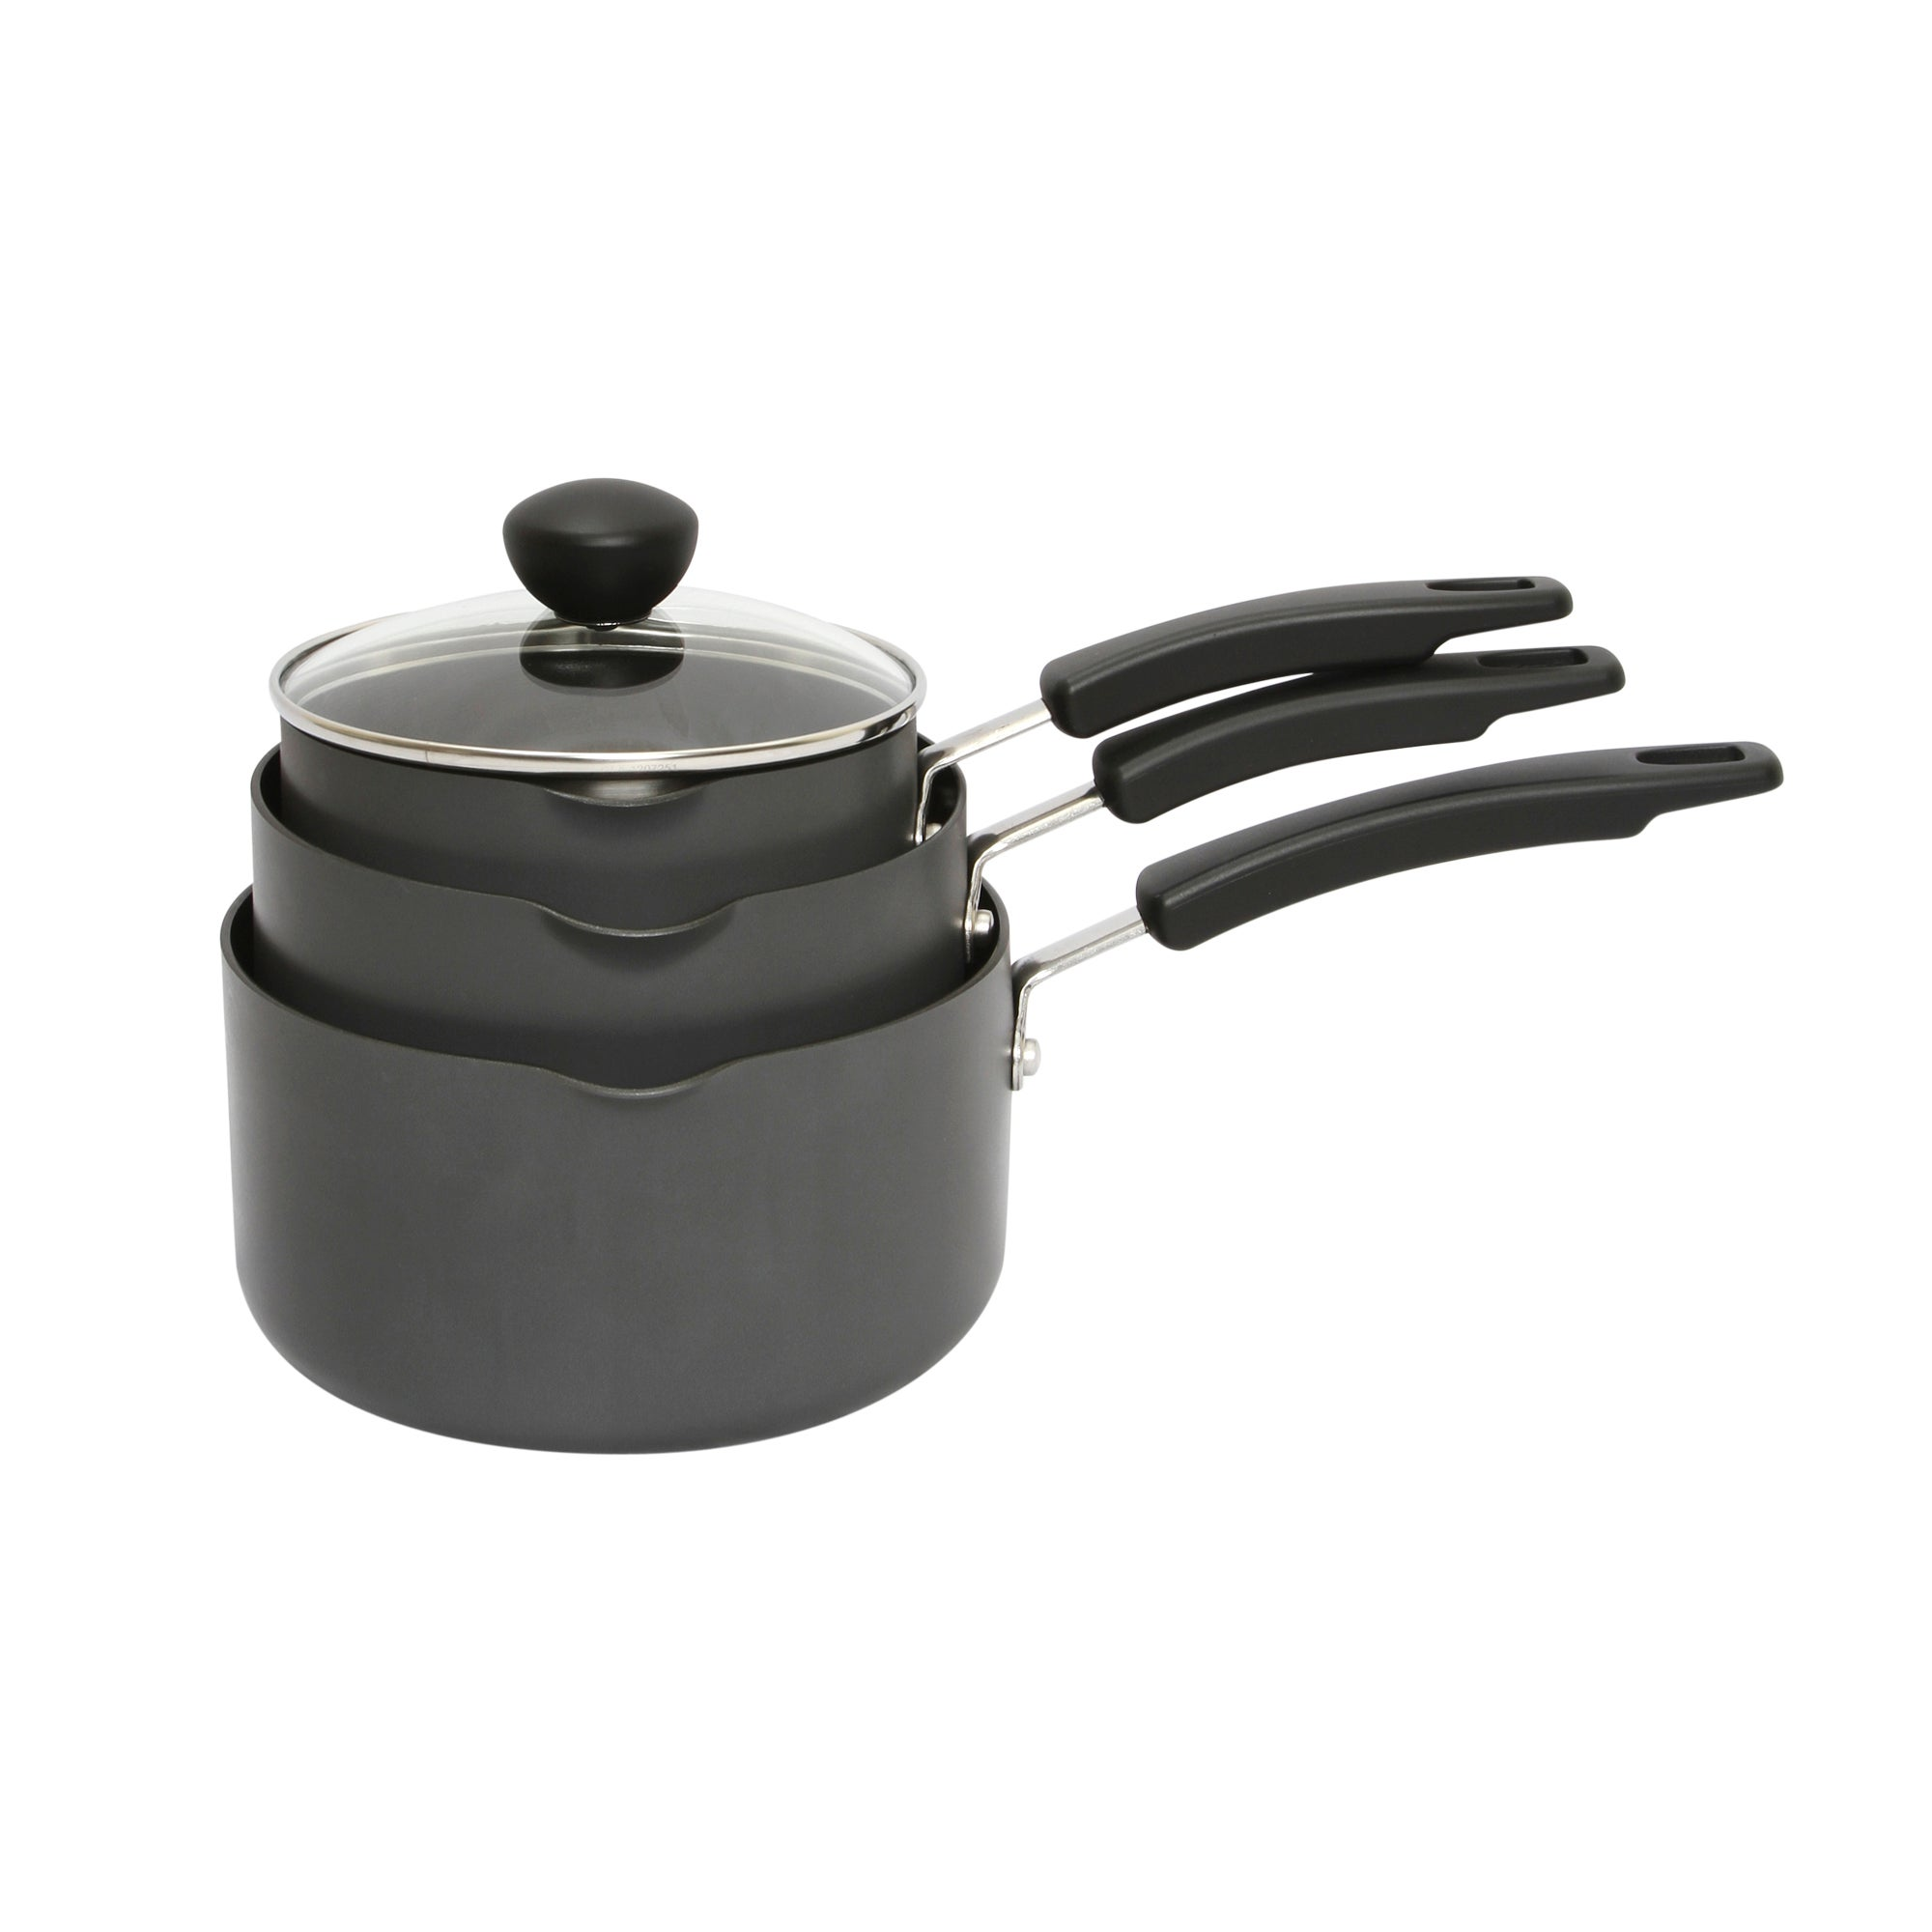 Dunelm Hard Anodised 3 Piece Saucepan Set